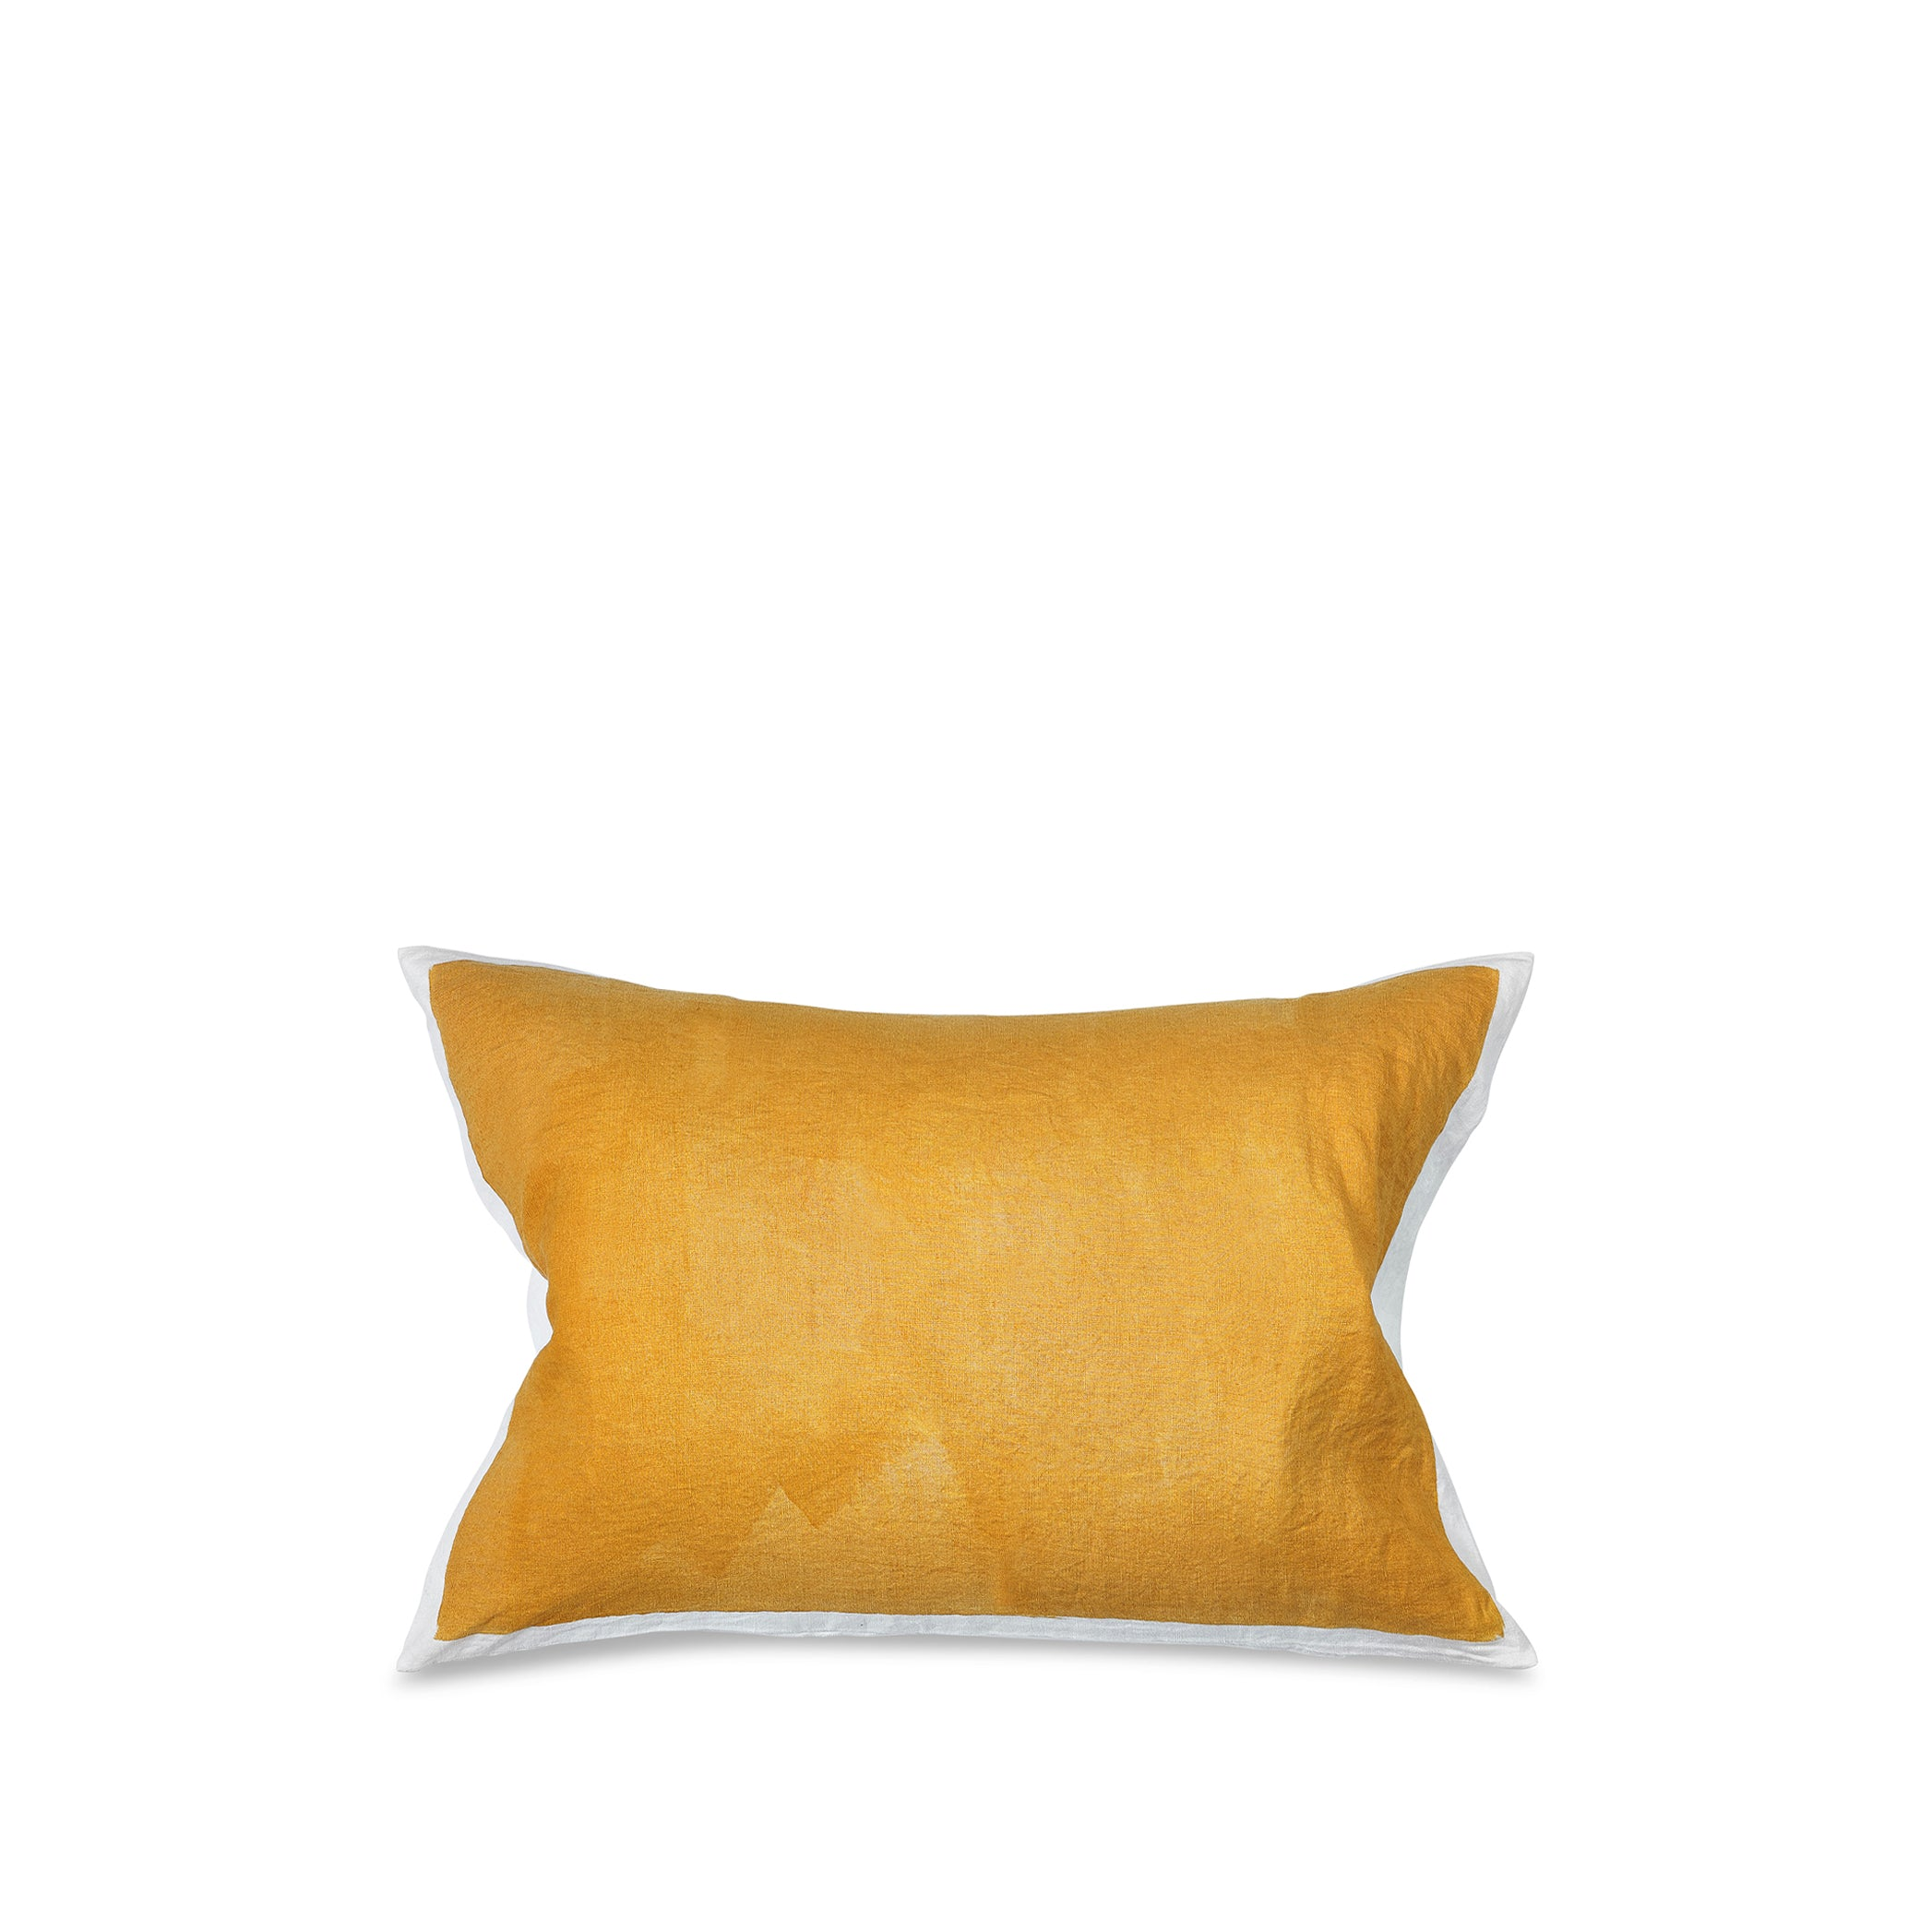 Hand Painted Linen Cushion in Mustard Yellow, 60cm x 40cm